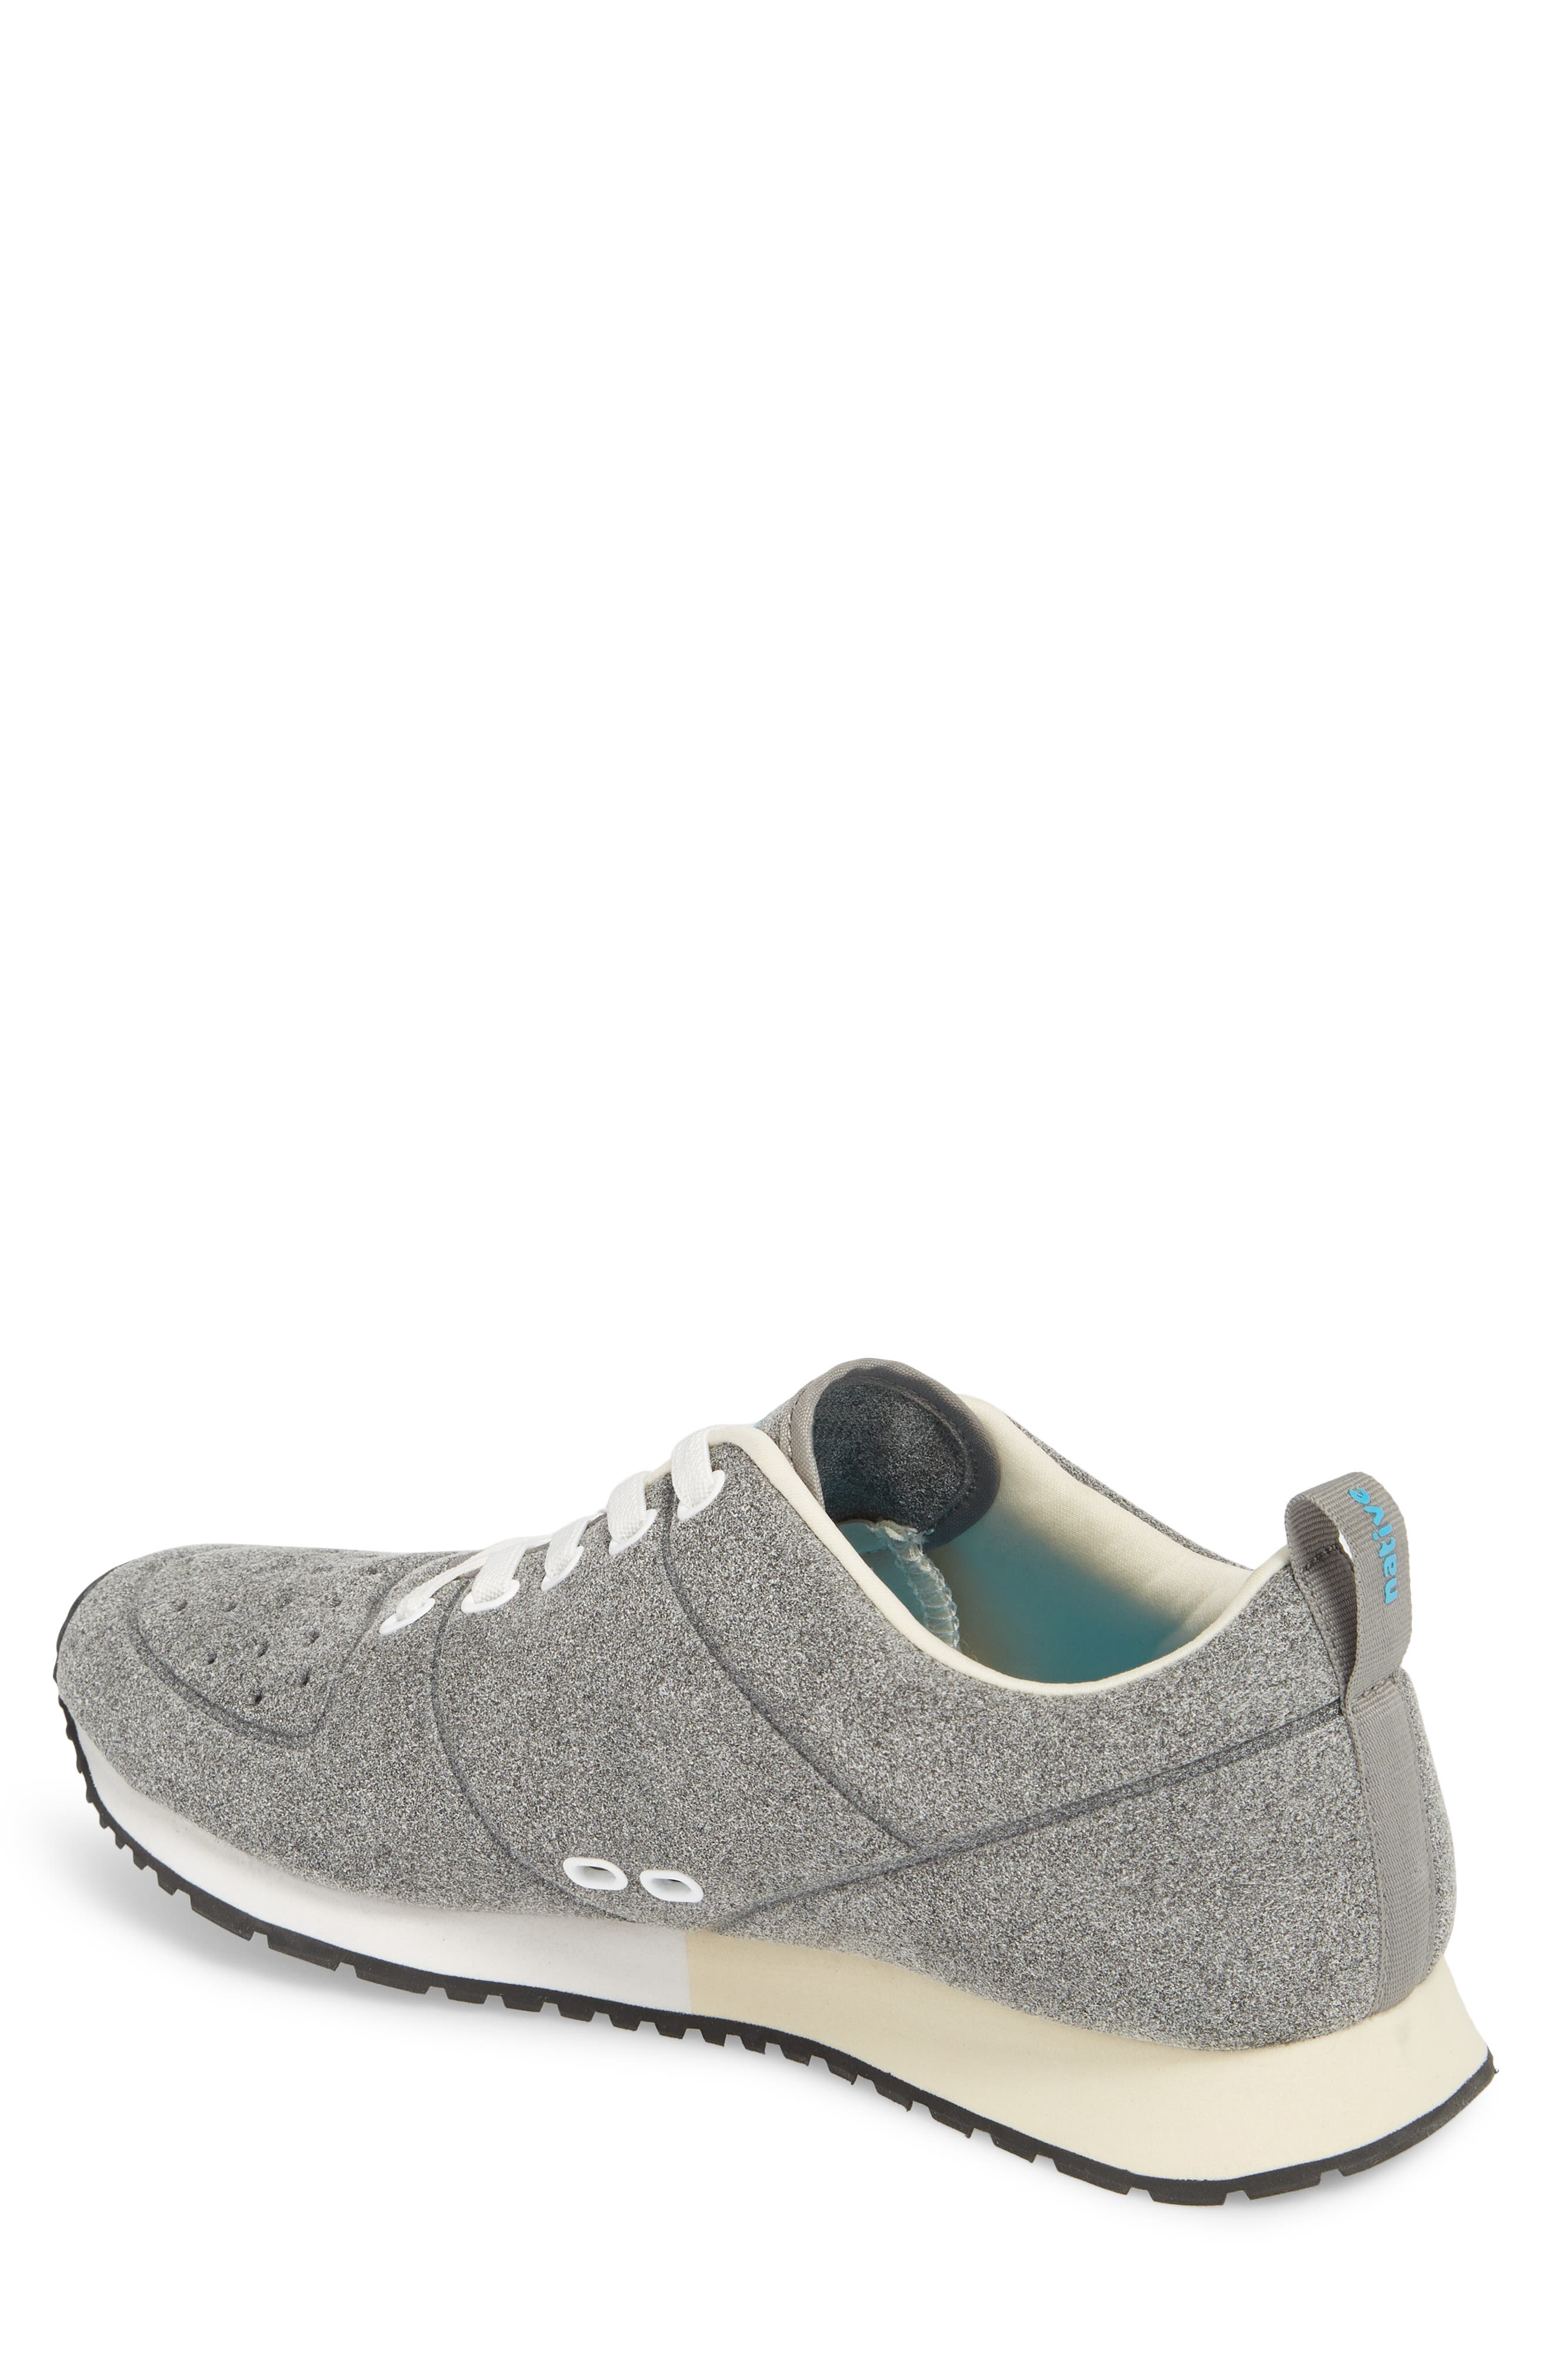 Cornell Perforated Sneaker,                             Alternate thumbnail 2, color,                             Pigeon Grey/ Shell White